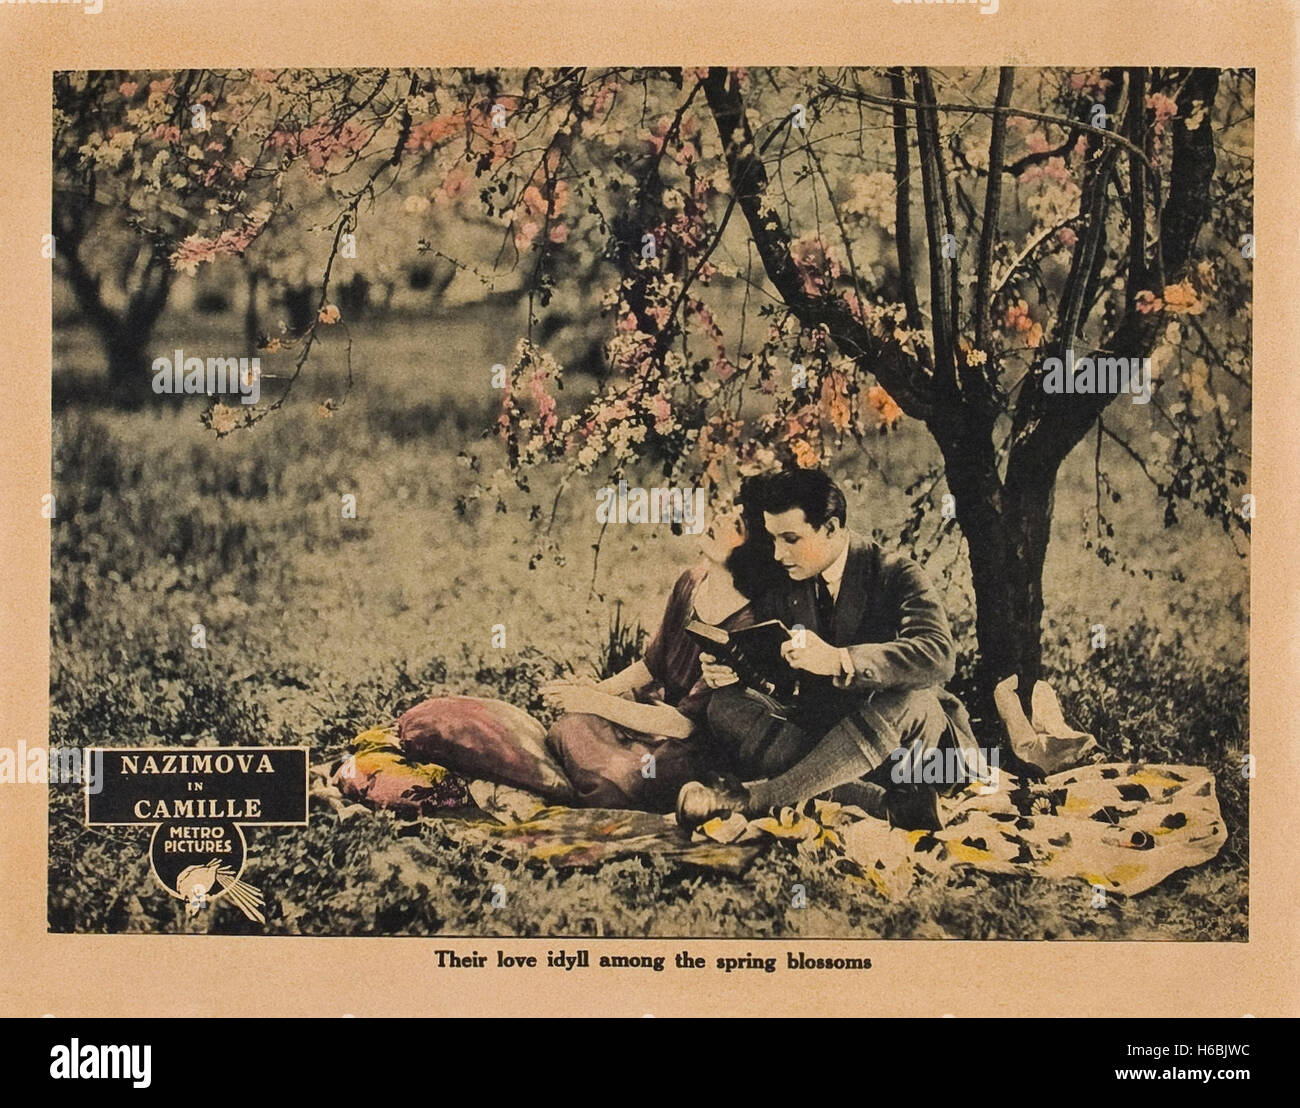 Camille (1921)  - Movie Poster - - Stock Image